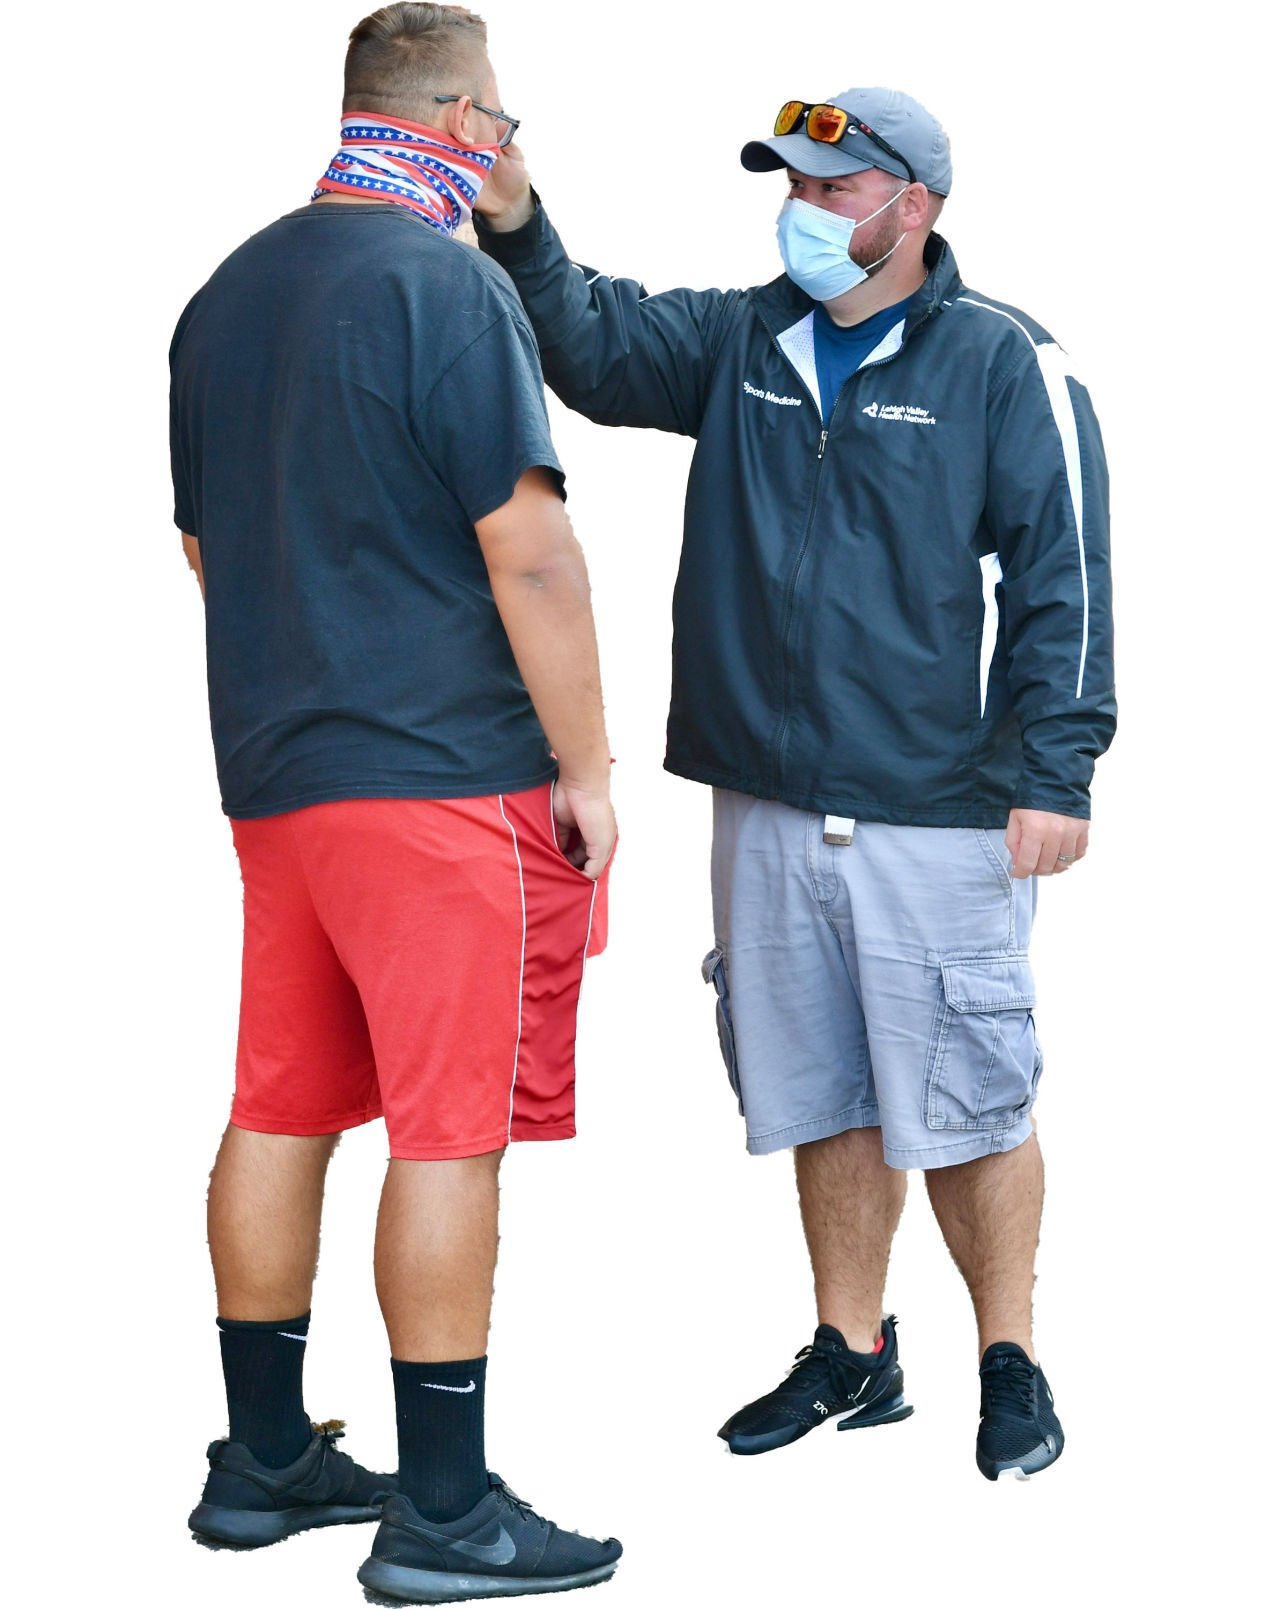 Athletic trainers working hard to keep players, coaches safe